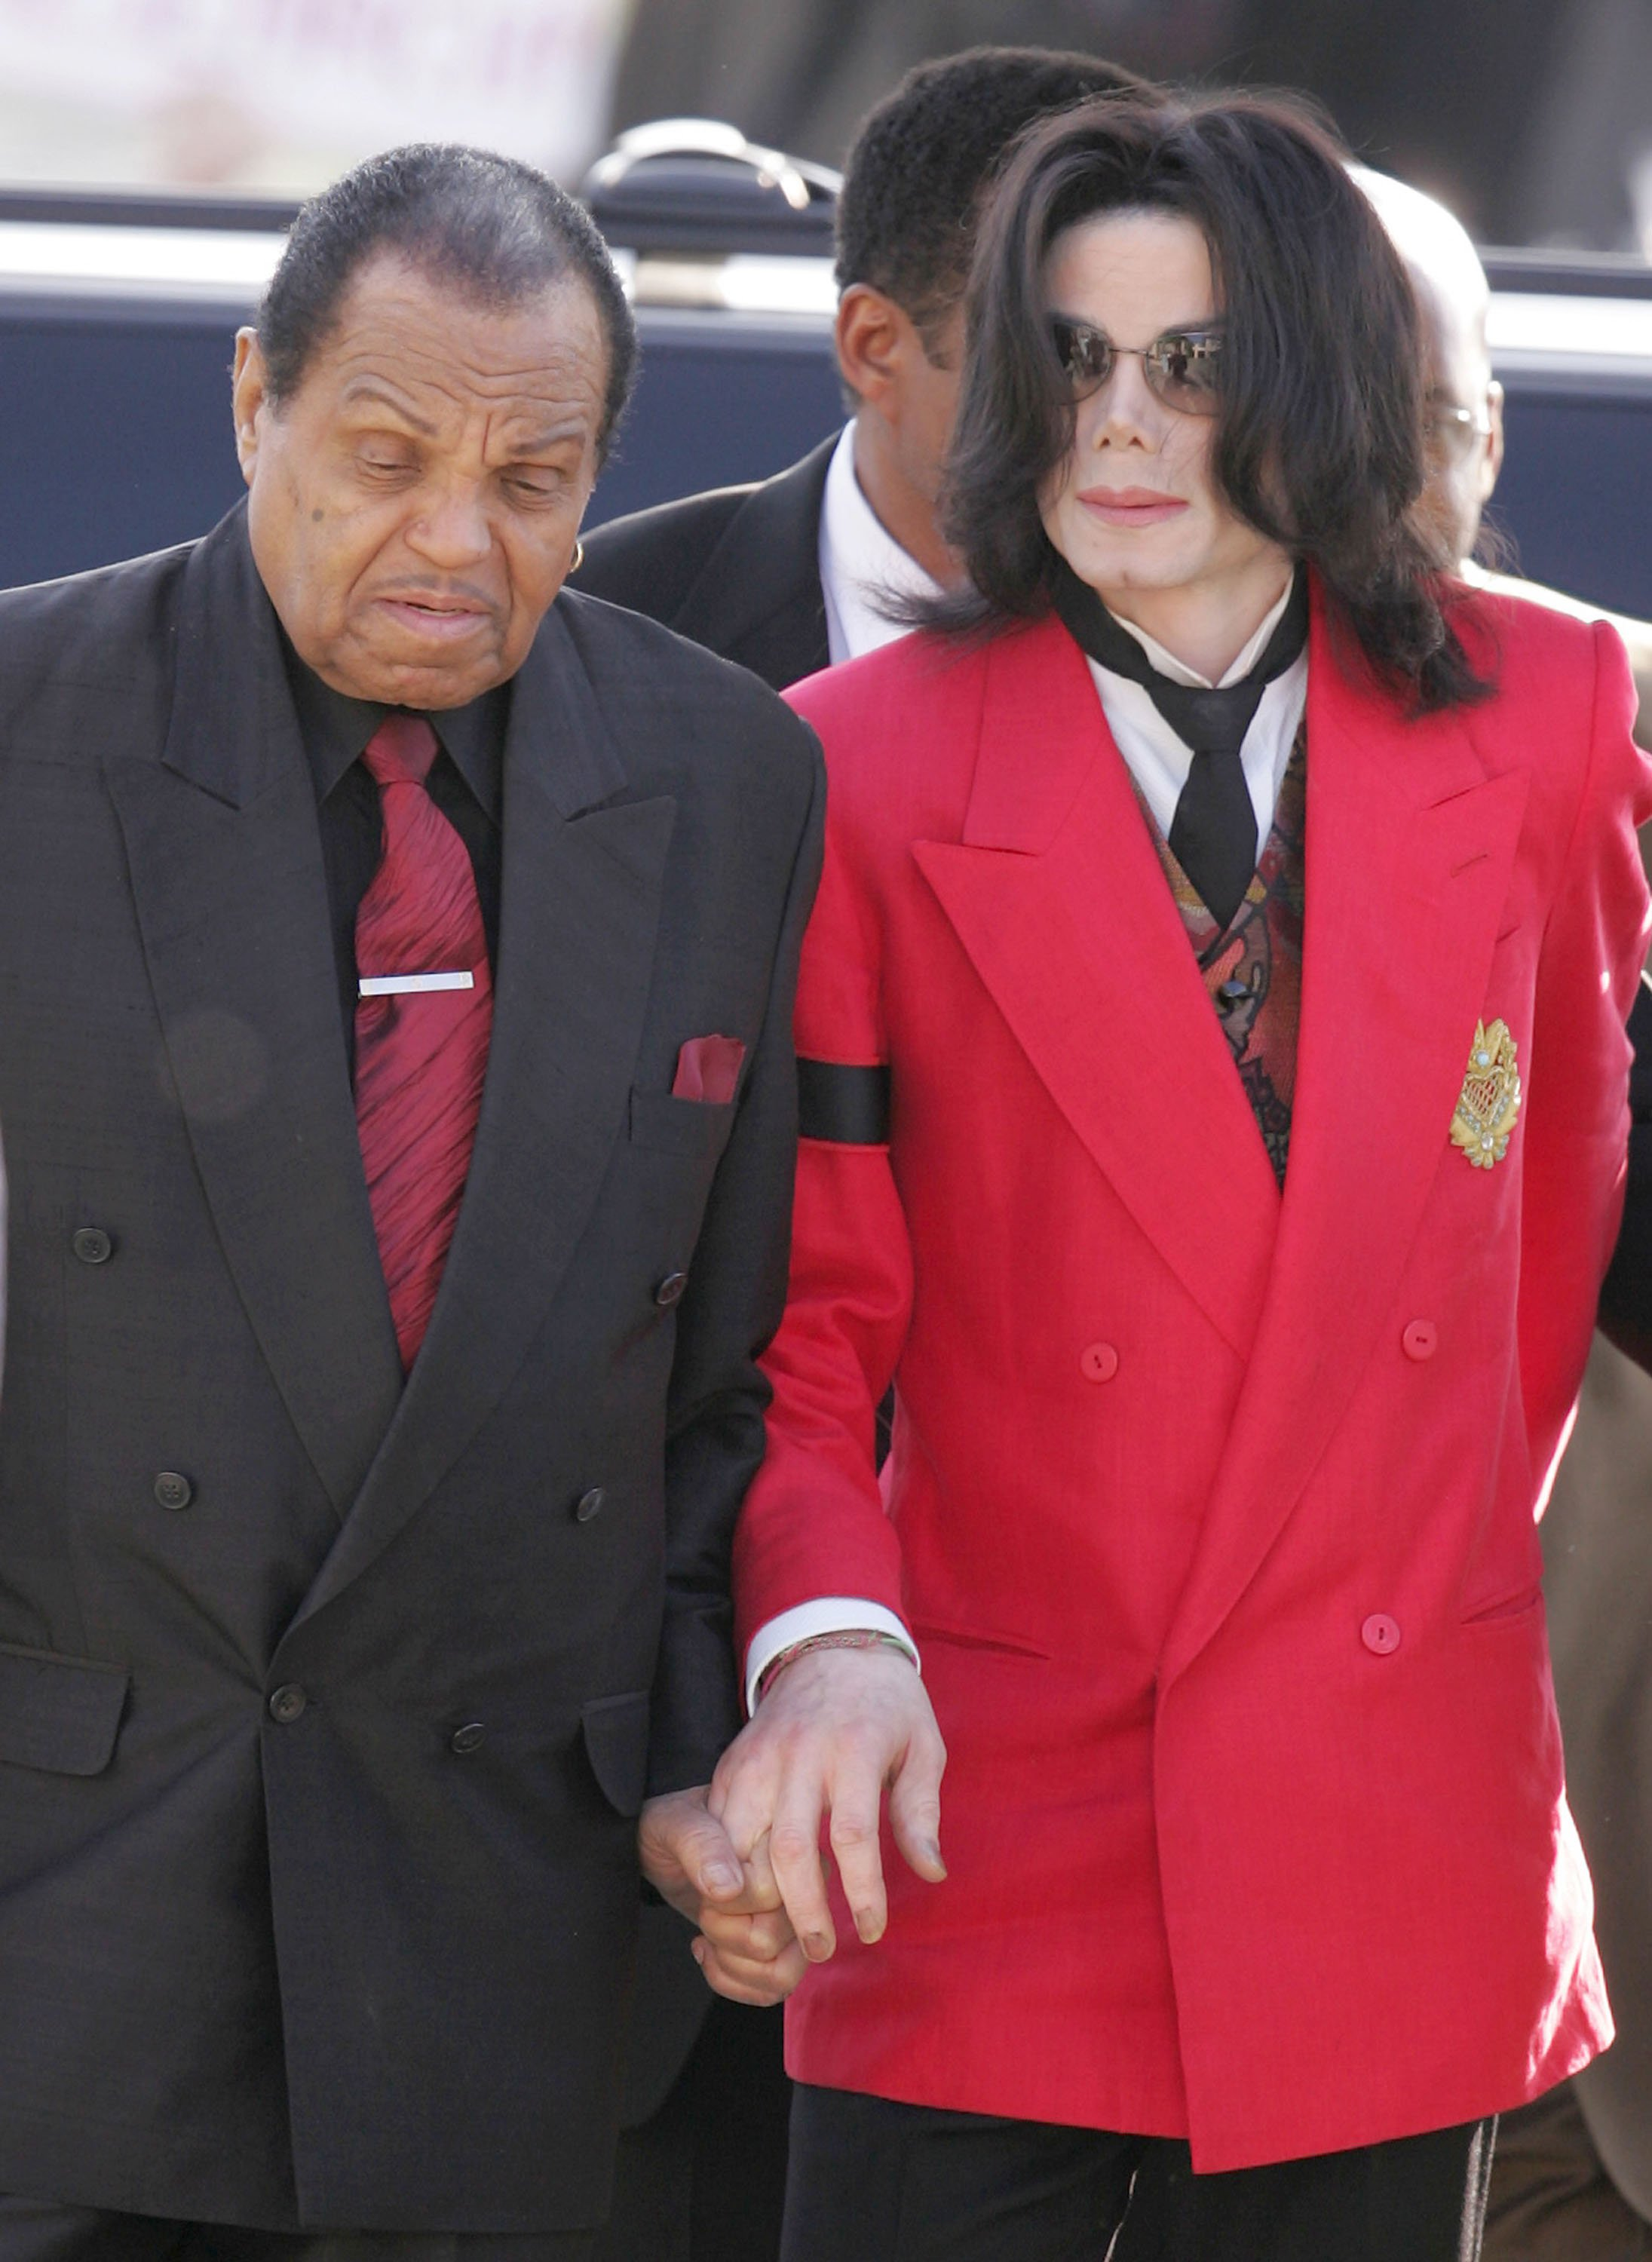 Michael Jackson und Joe Jackson | Quelle: Getty Images